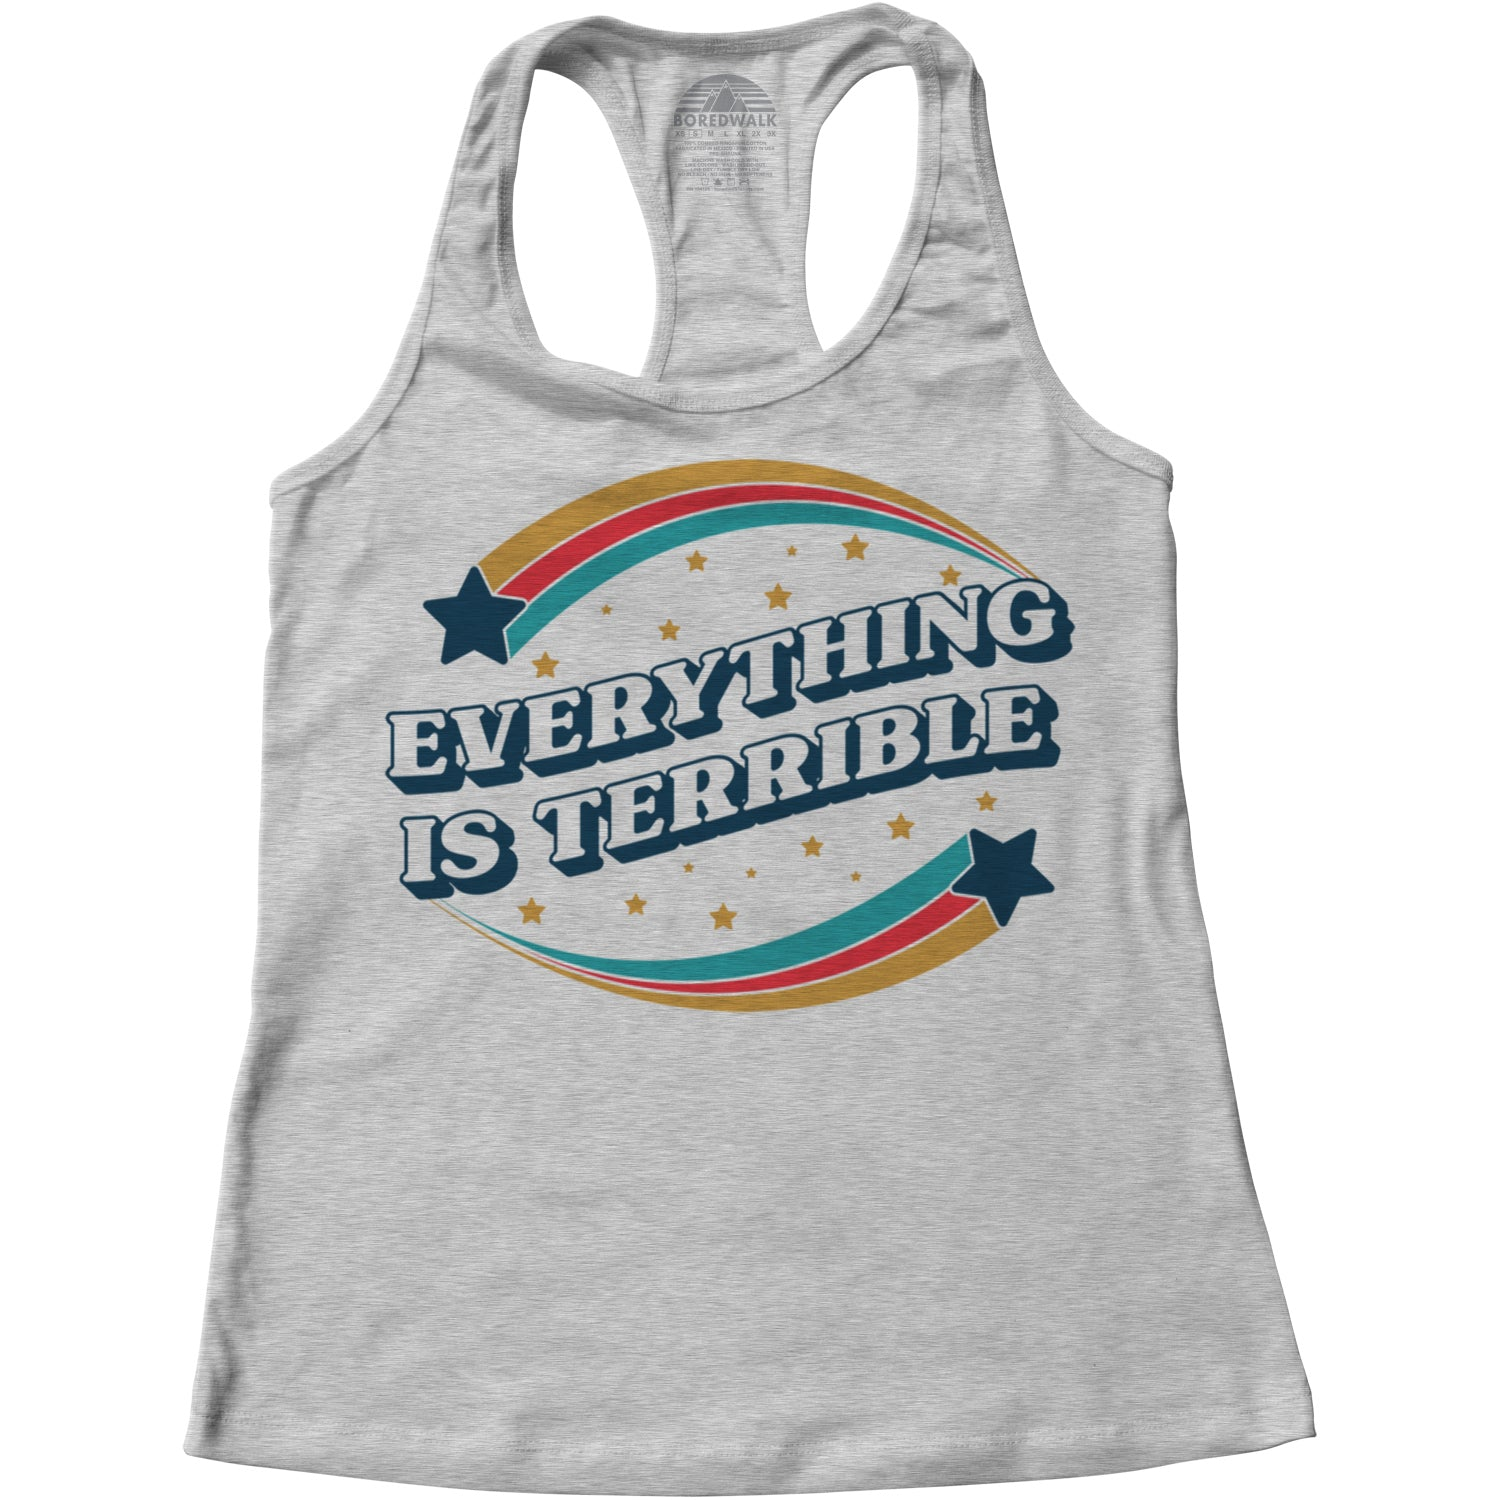 Women's Everything is Terrible Racerback Tank Top